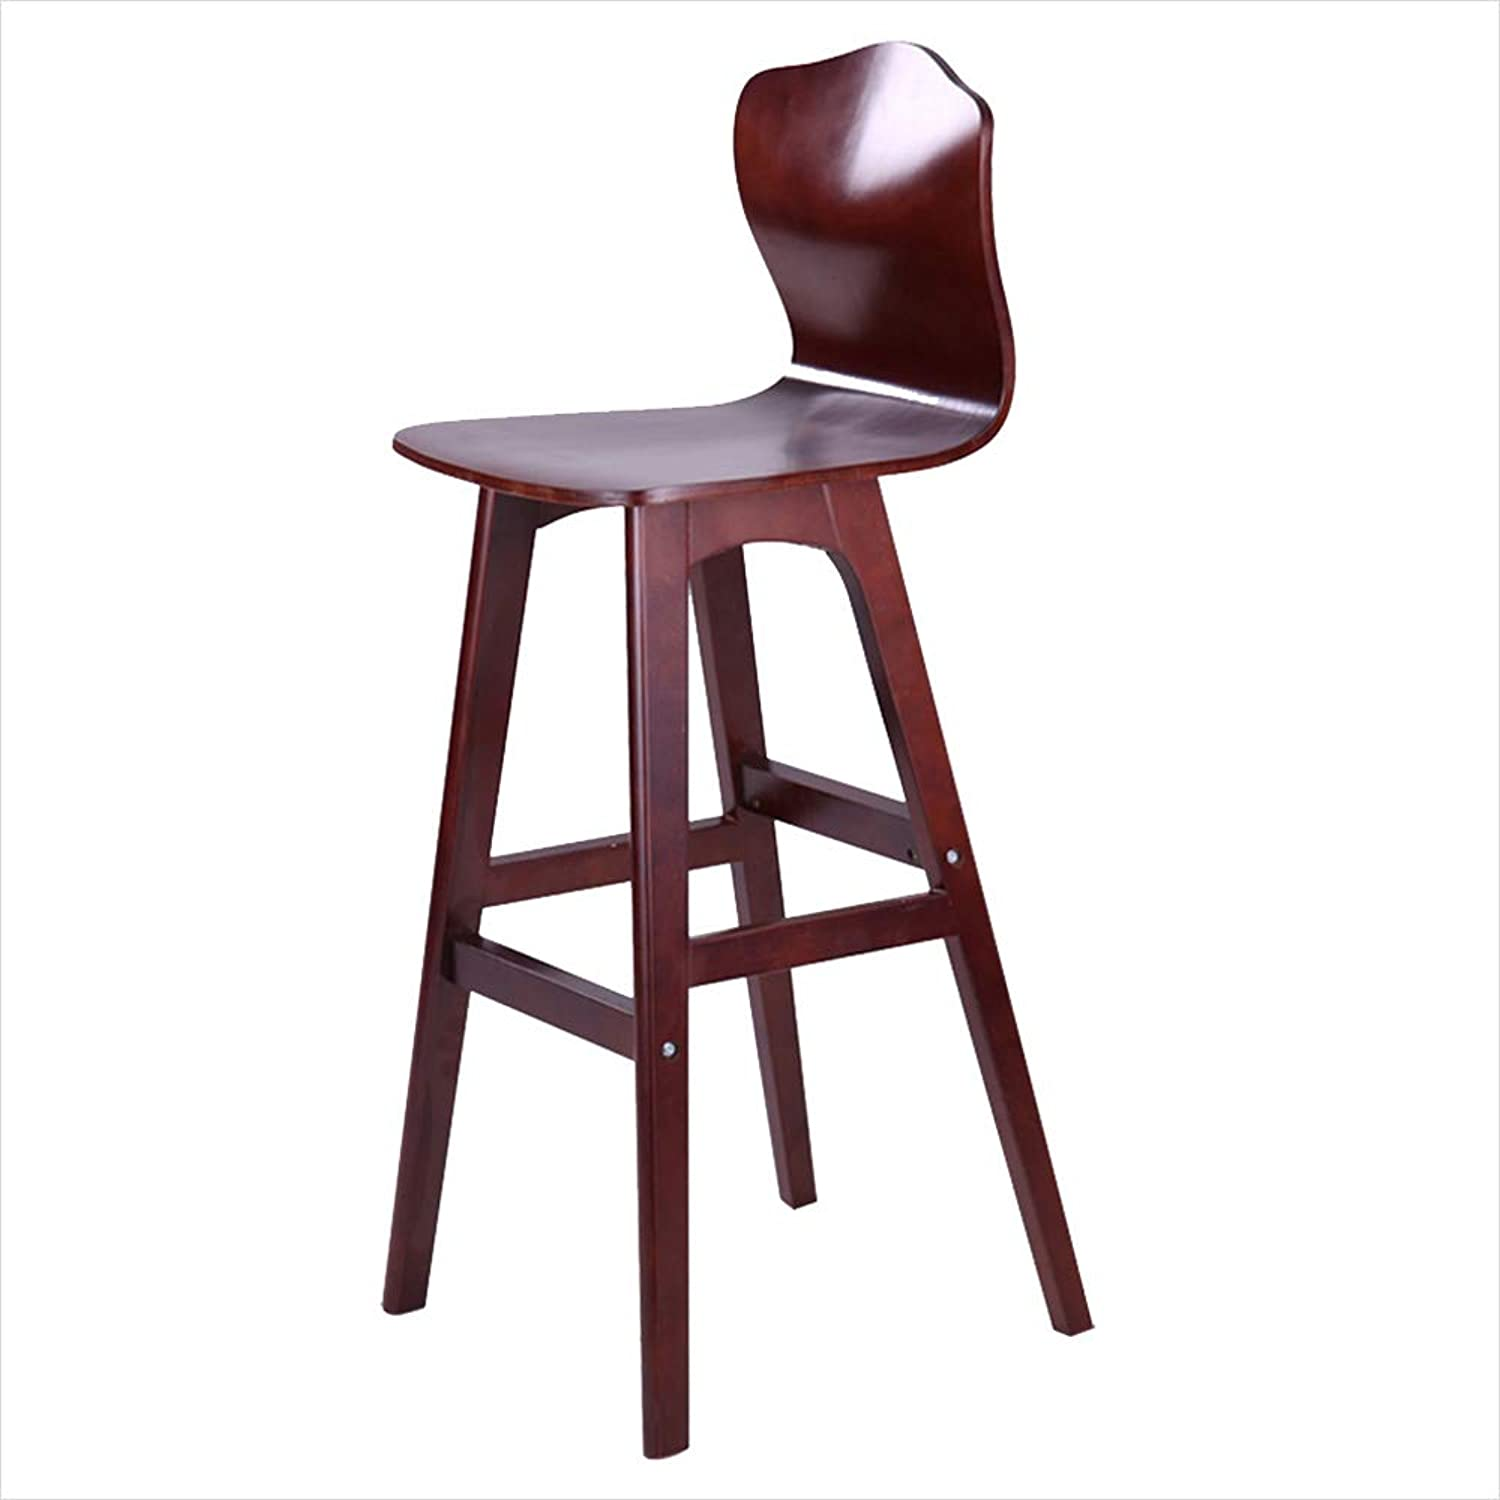 QING MEI Bar Stool High Chair Nordic Creative High Back Stool Dining Chair Solid Wood Stool Modern Minimalist Front Desk Chair Brown Wood color Optional A++ (color   Brown, Size   2-74cm)